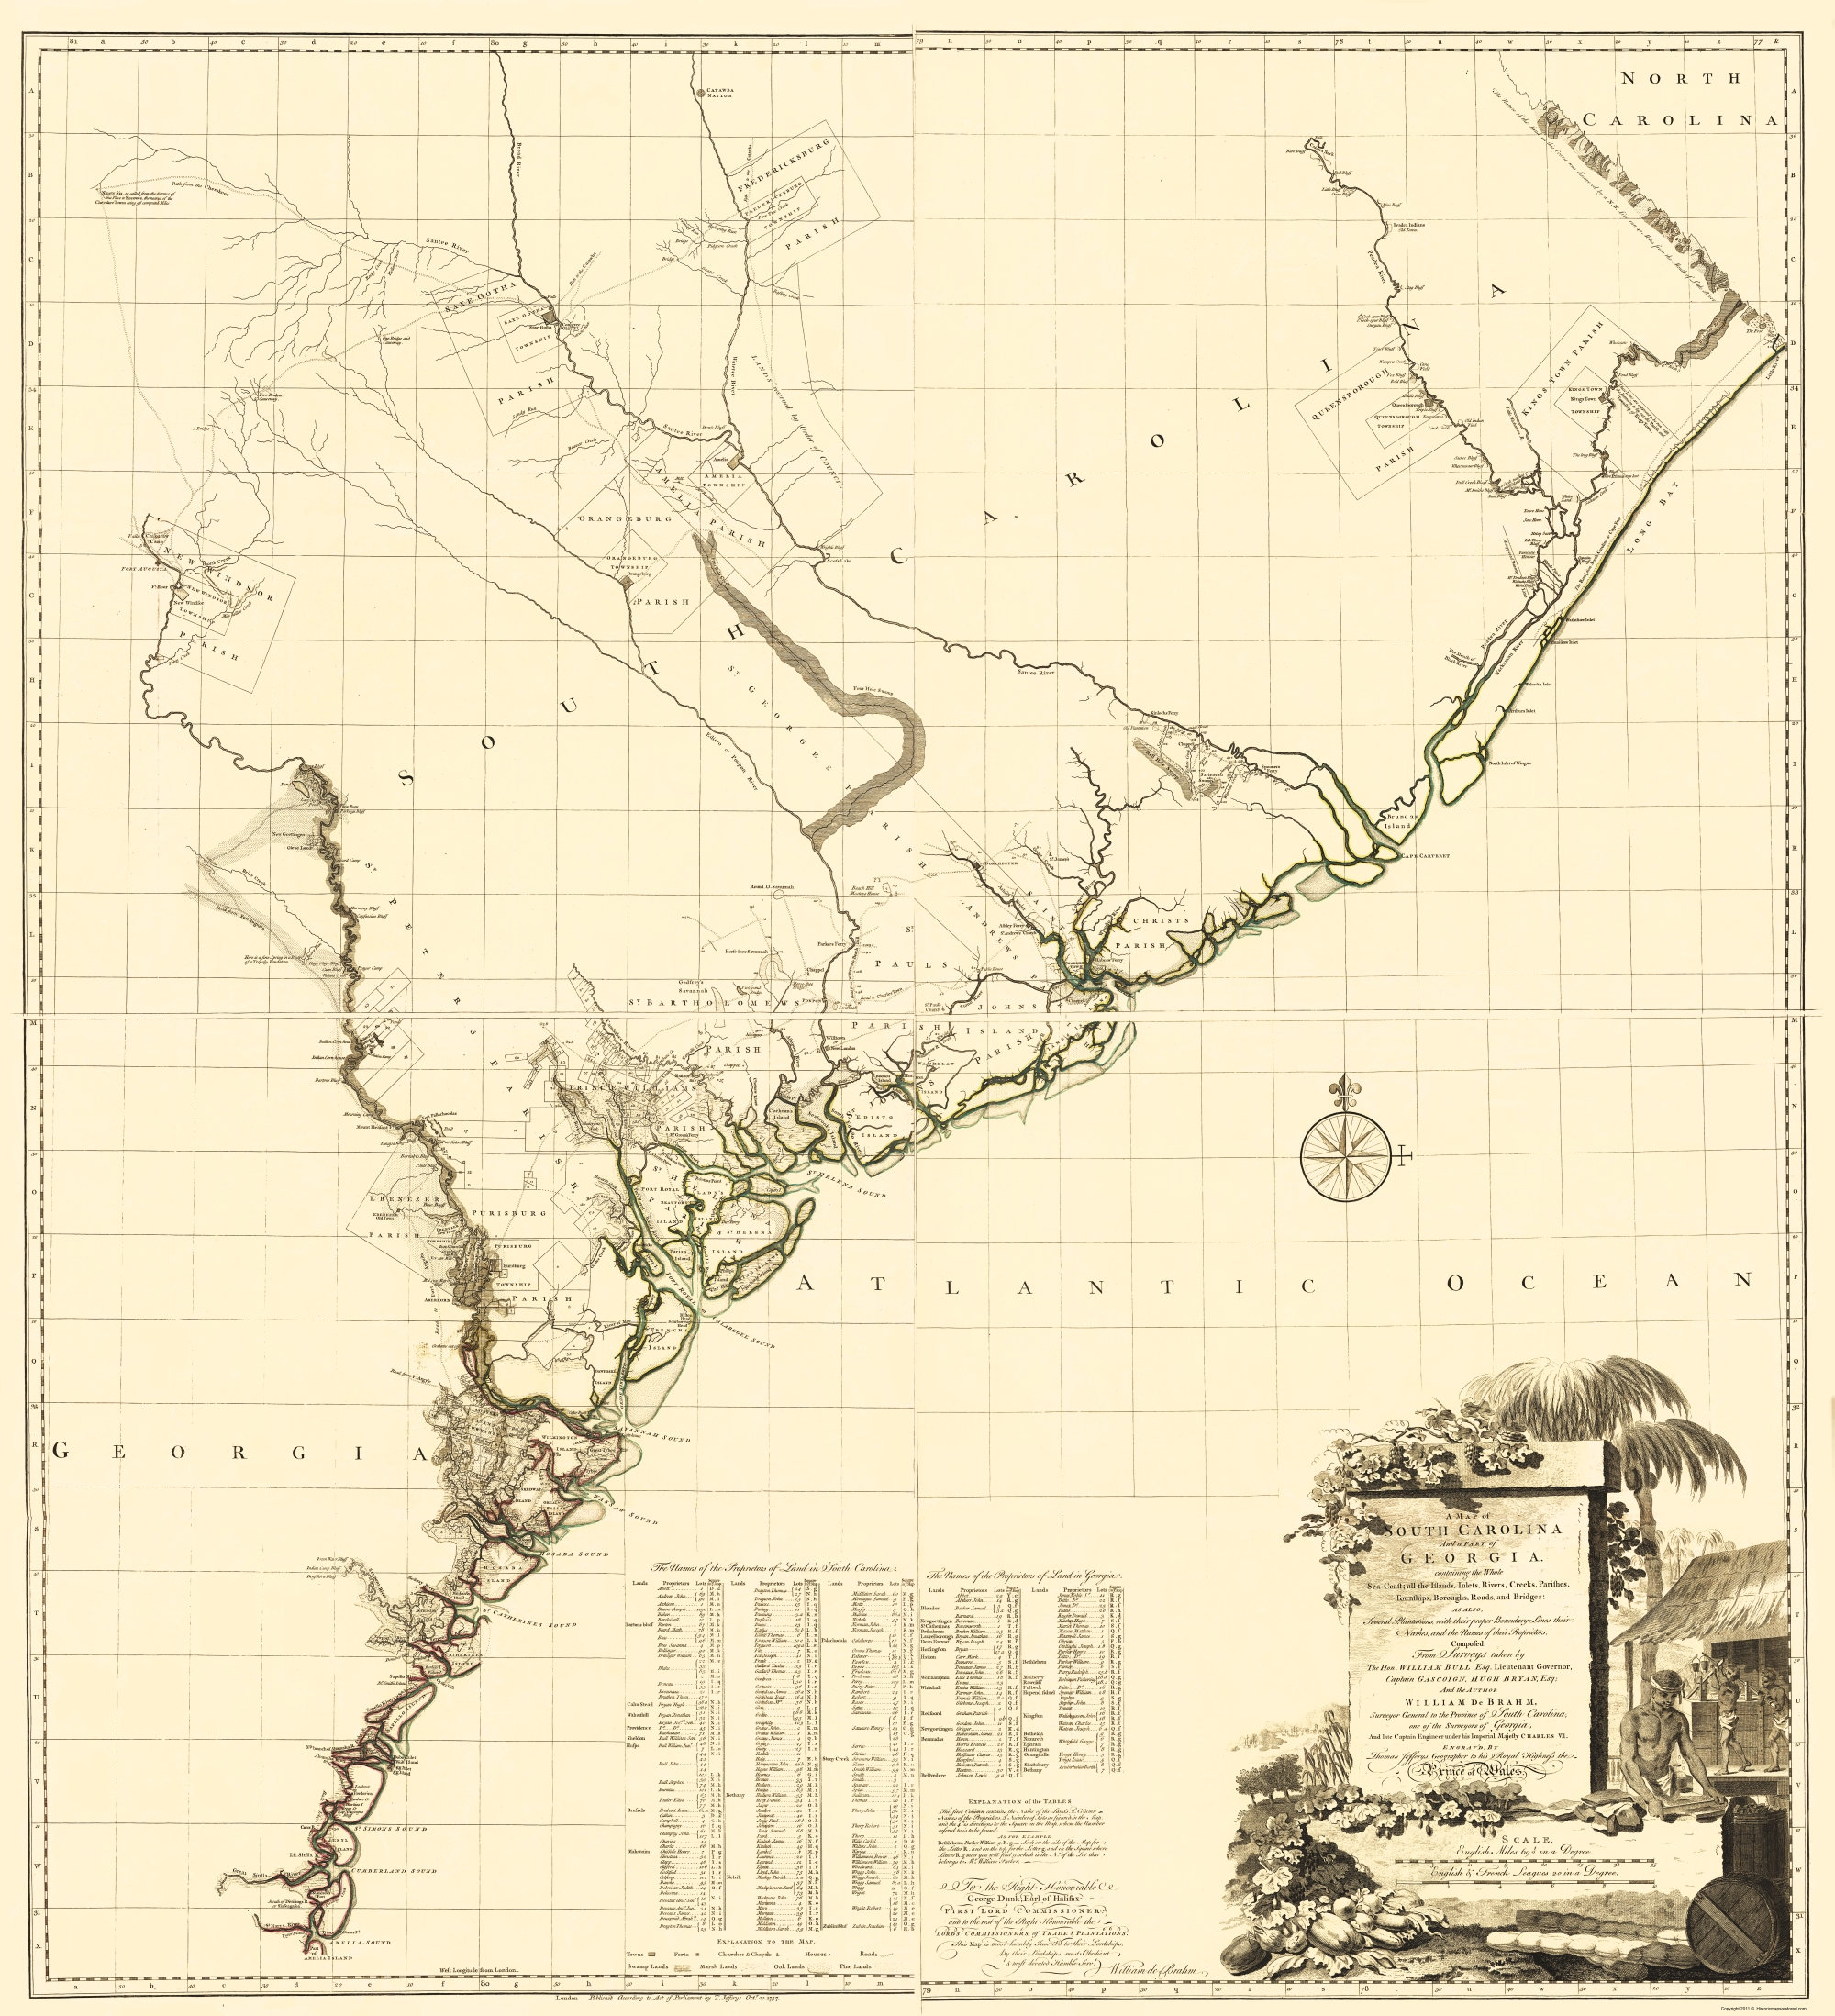 Old State Map - South Carolina, Part of Georgia - Jefferys 1757 - 23 x 25.26